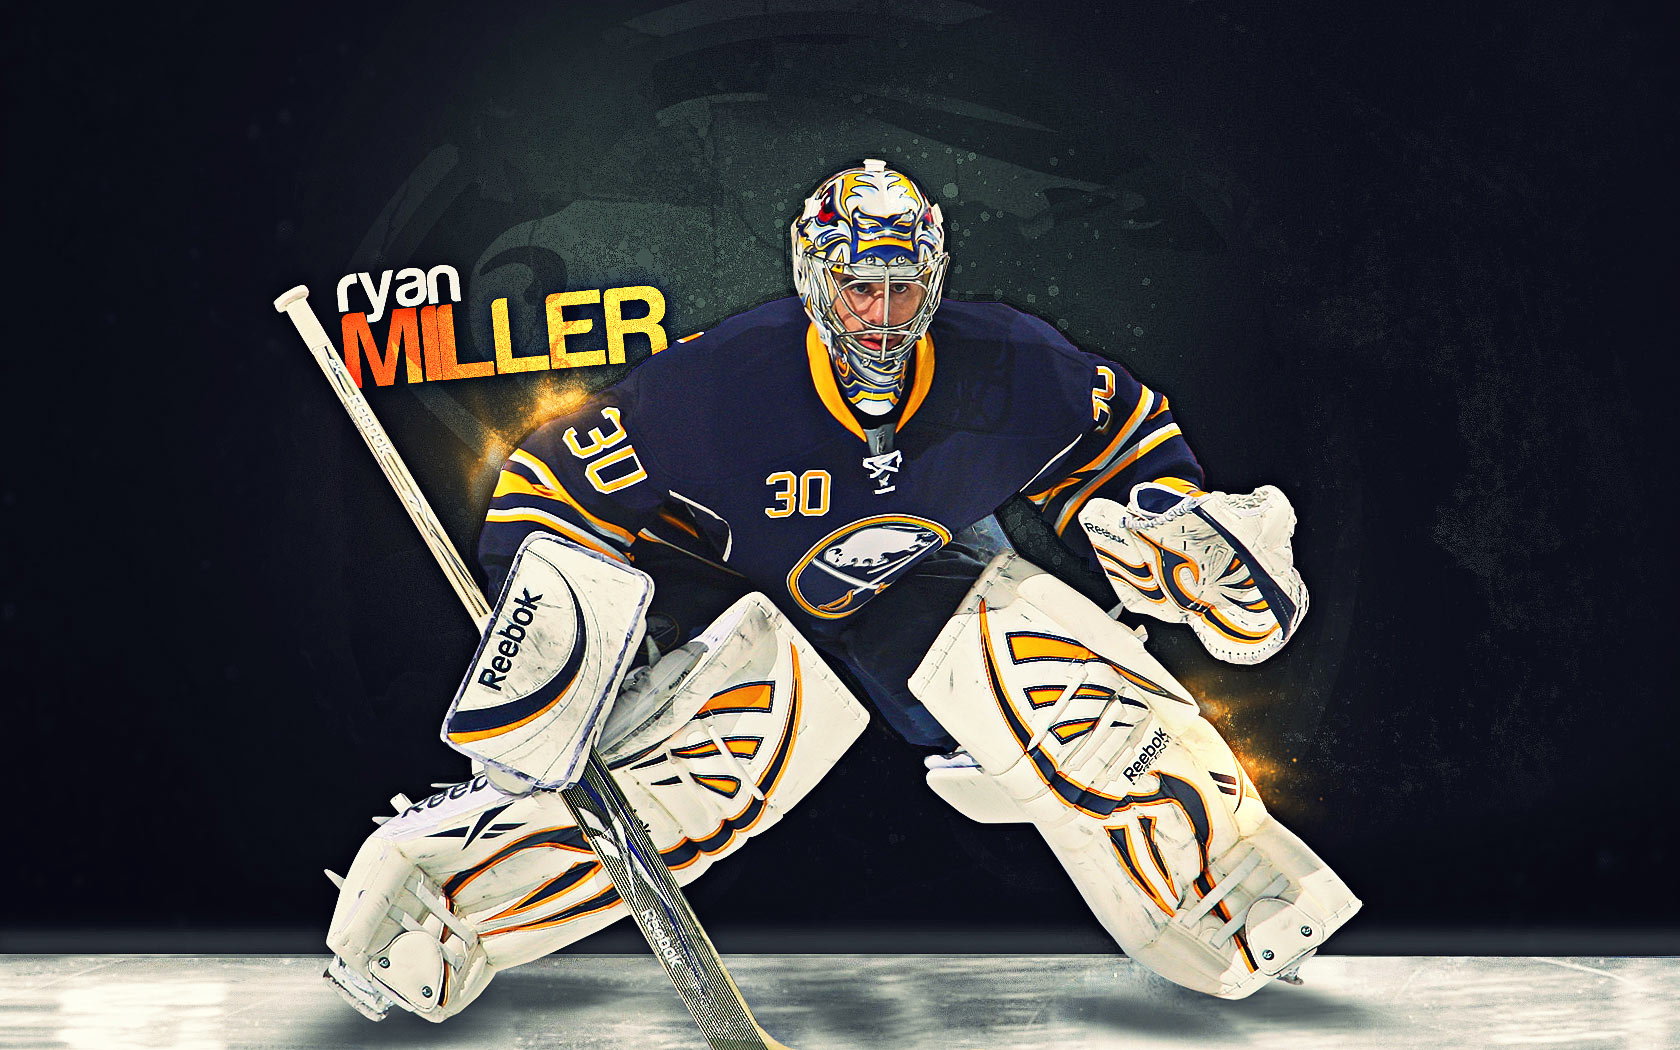 nhl desktop wallpaper   wwwhigh definition wallpapercom 1680x1050